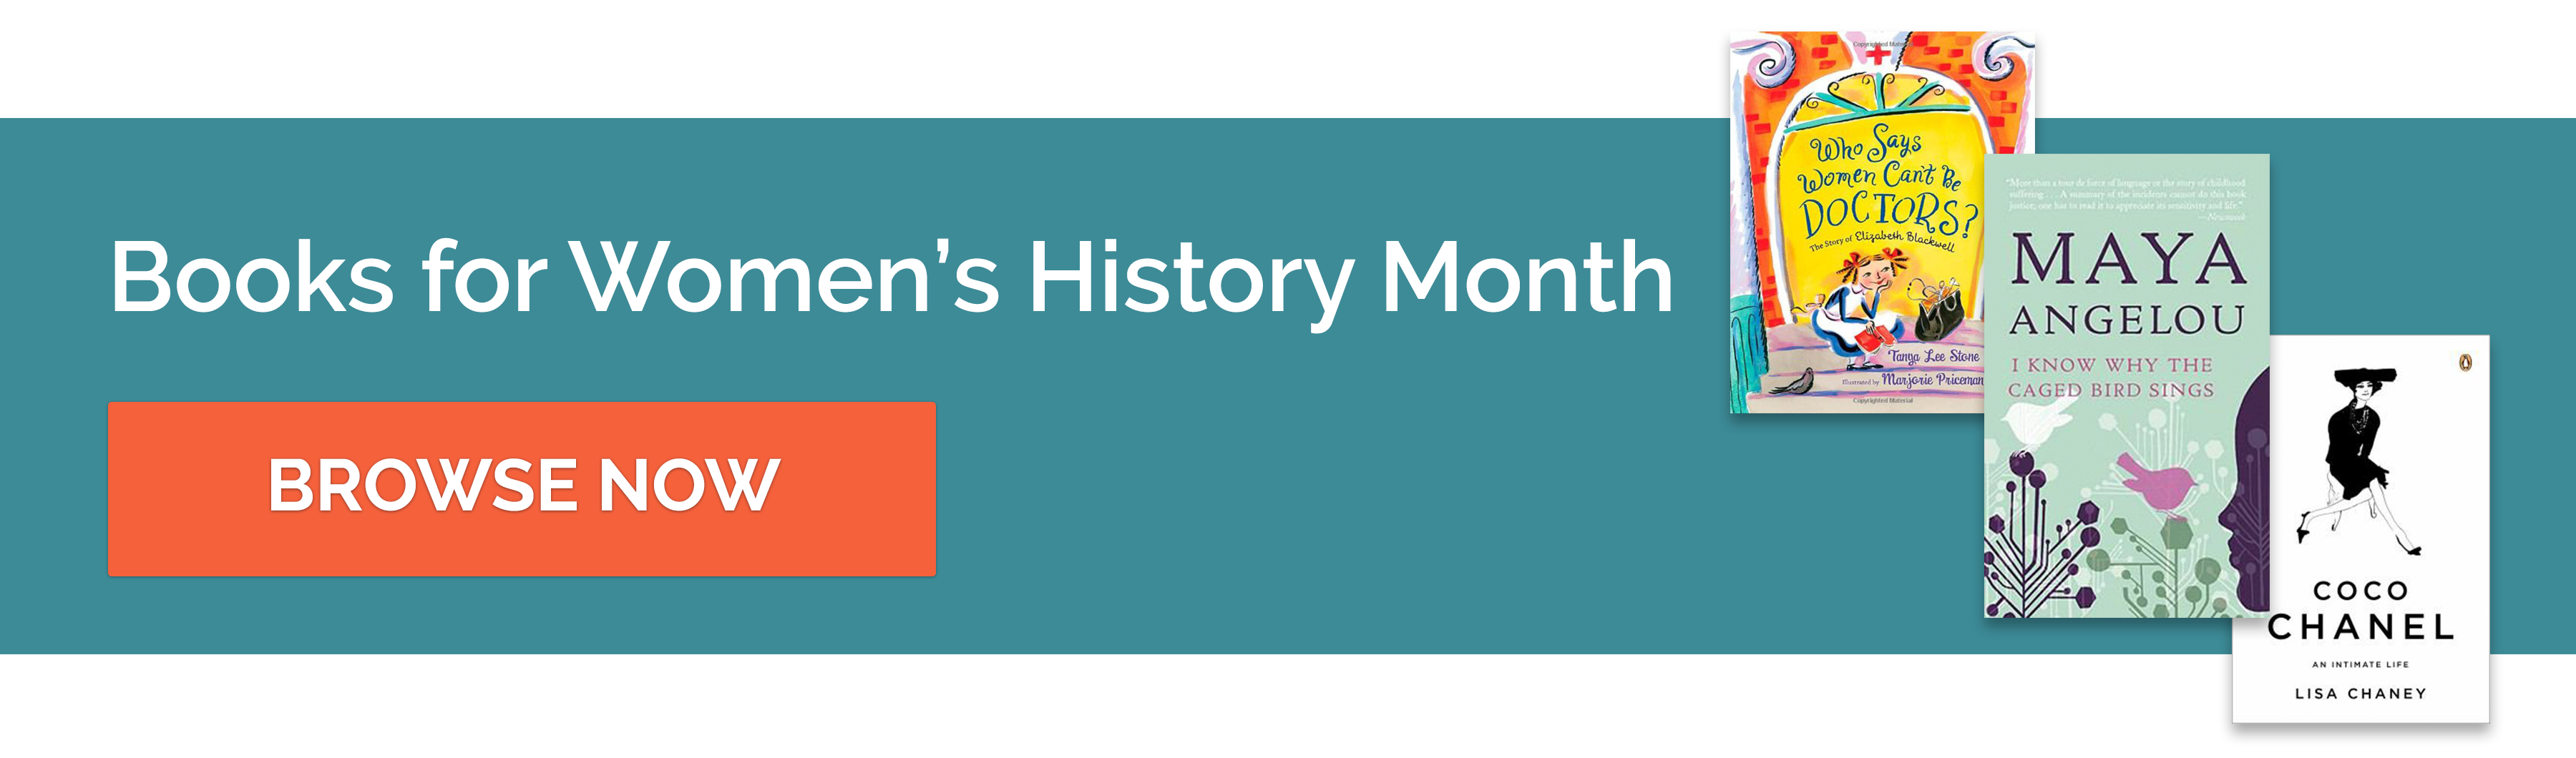 womens-history-month-banner